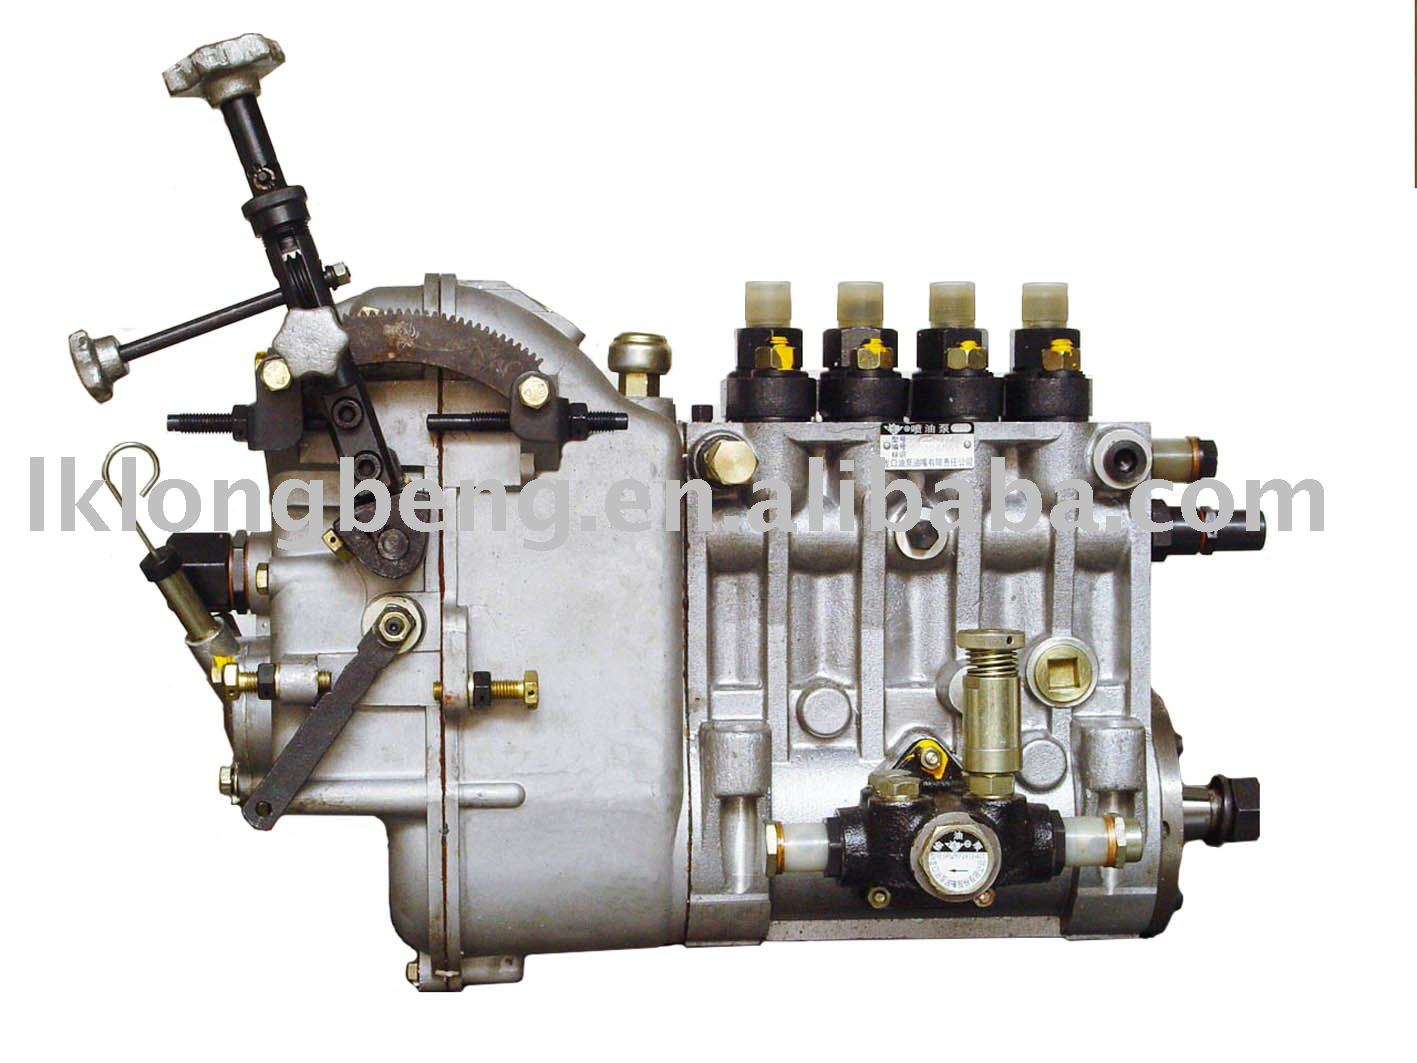 4 cylinders in-line P9 fuel injection pump